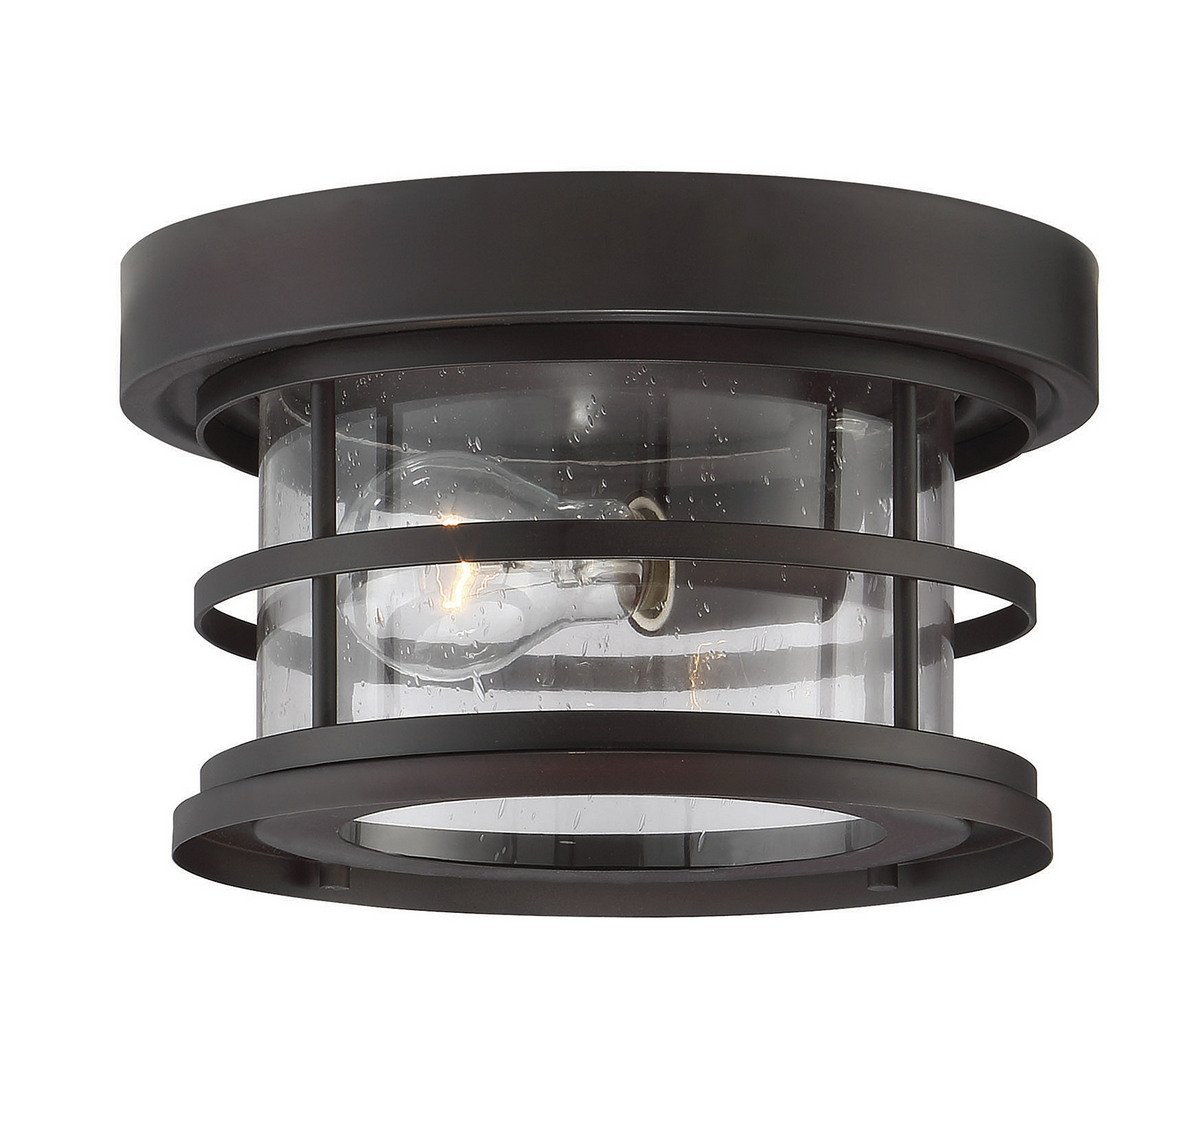 Savoy House Barrett 10'' Outdoor Ceiling Light in English Bronze 5-369-10-13 by Savoy House